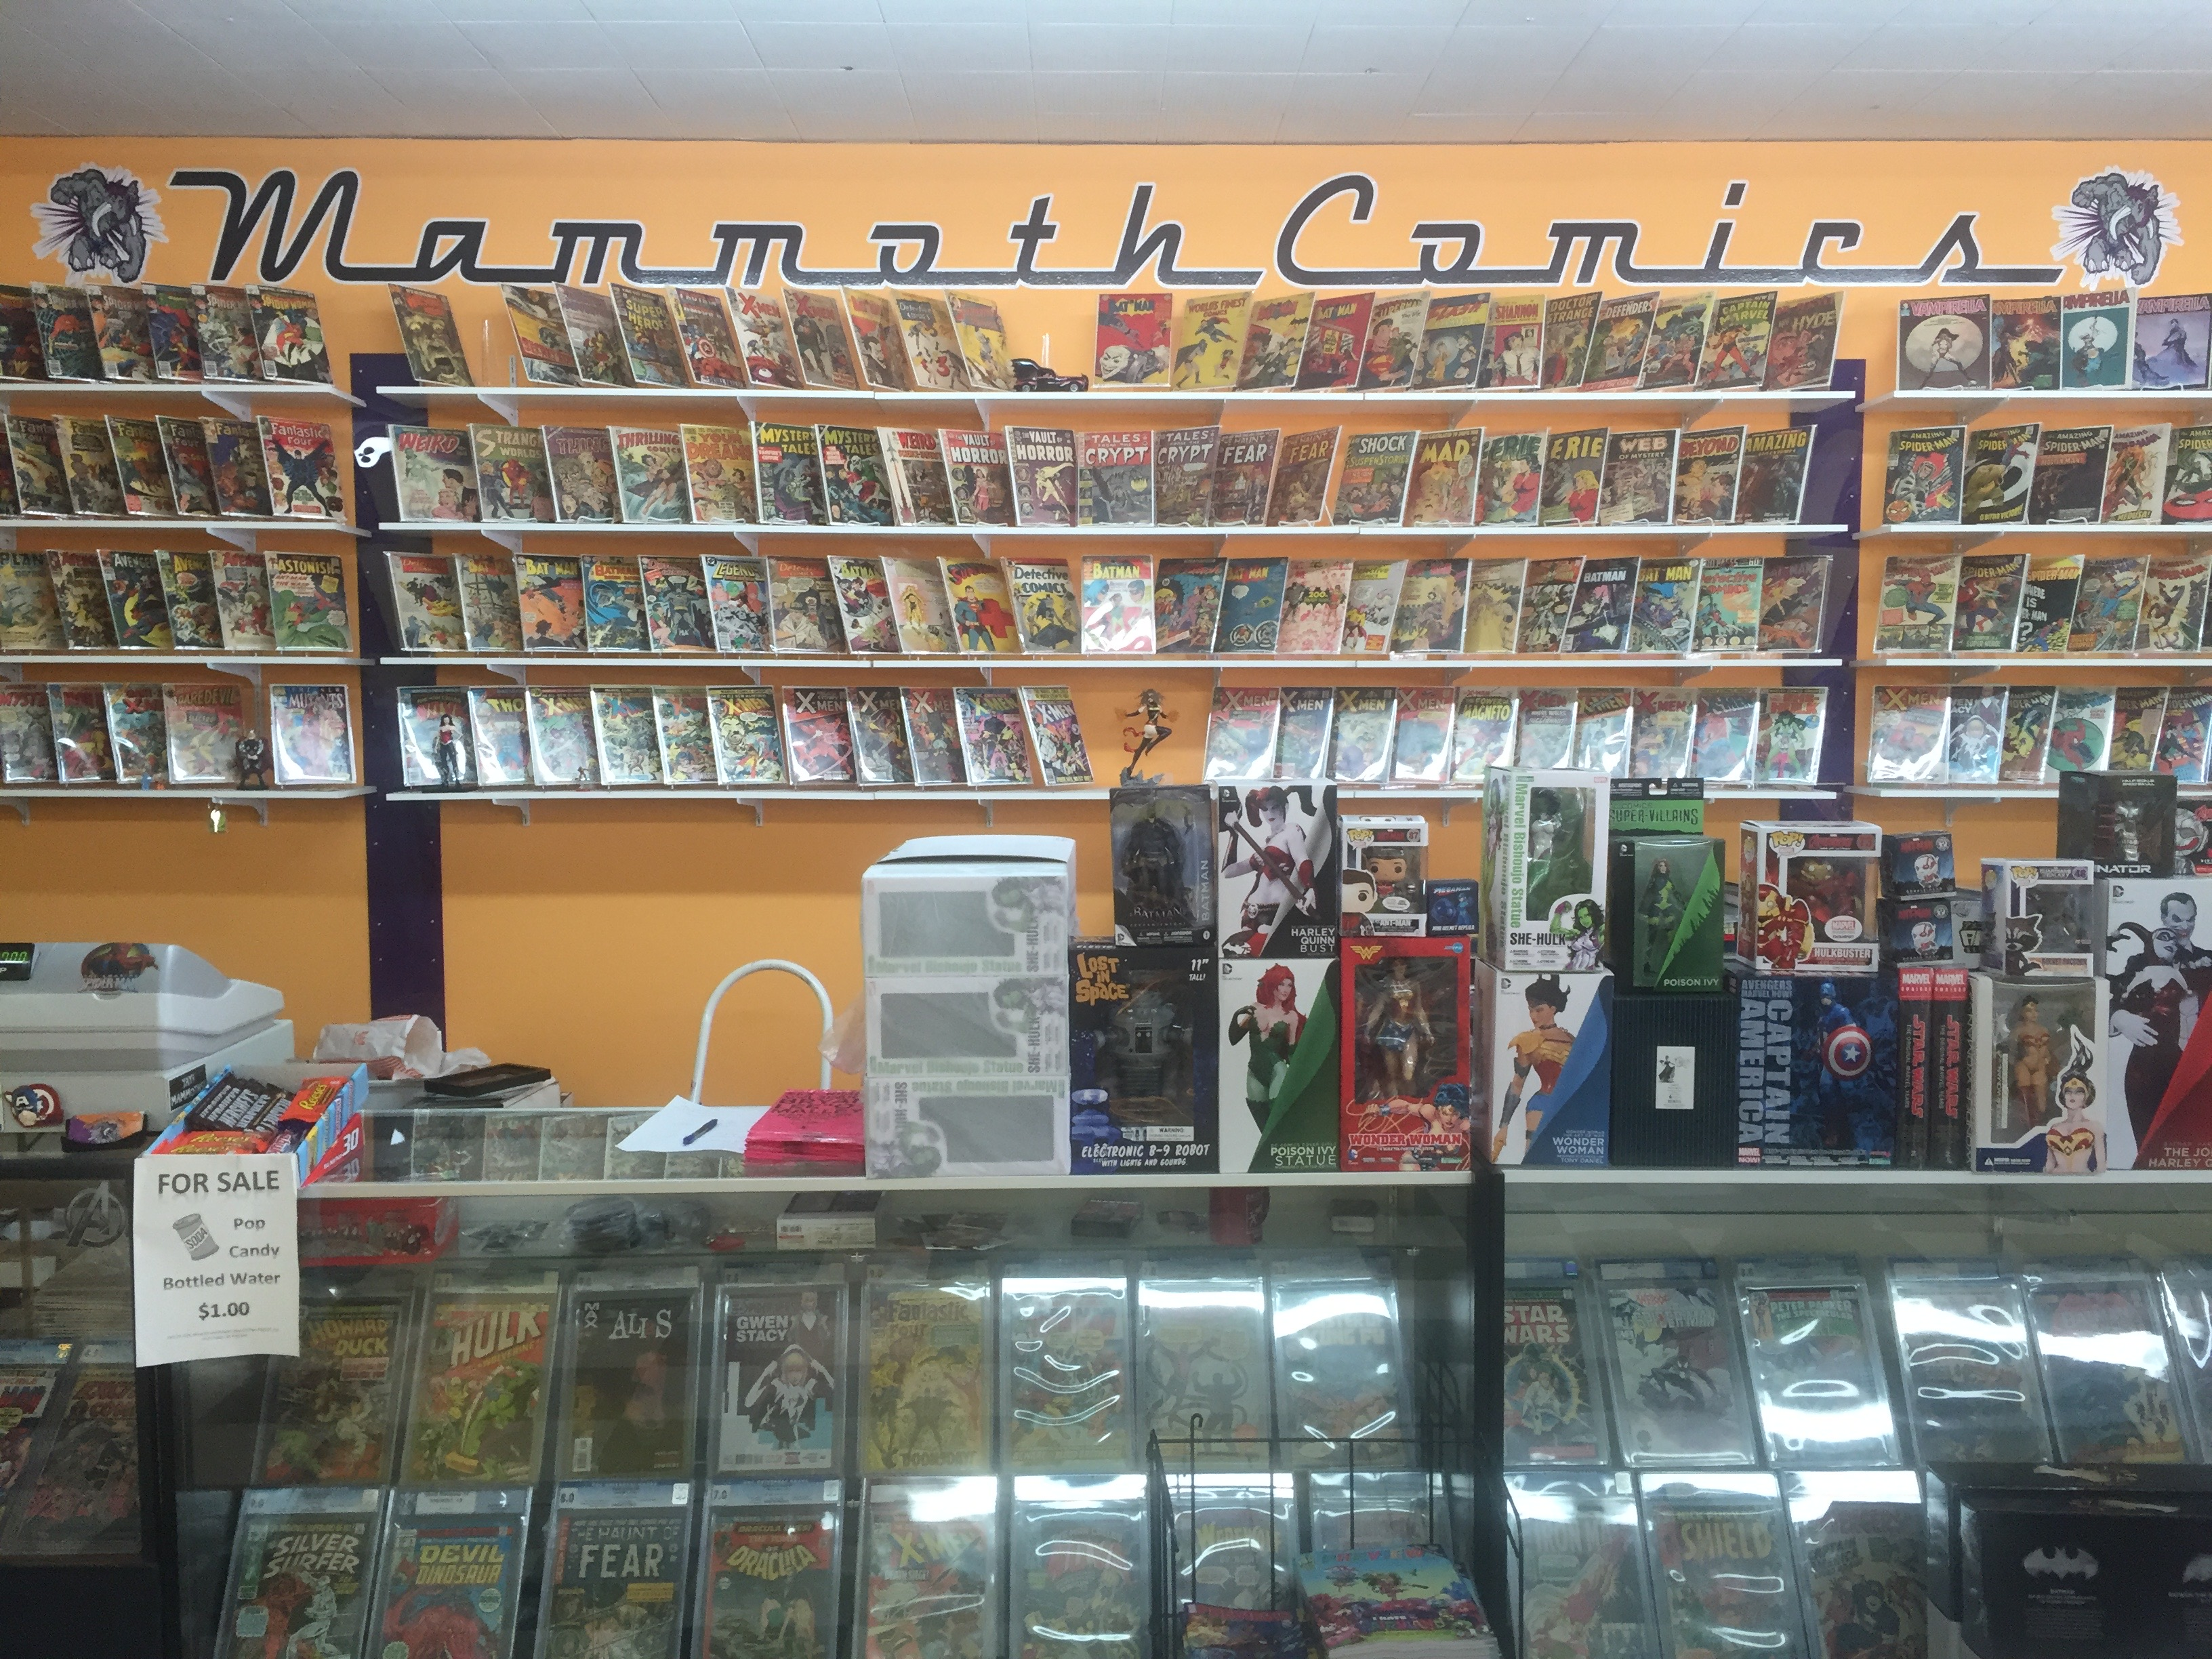 "<span  class=""uc_style_uc_tiles_grid_image_elementor_uc_items_attribute_title"" style=""color:#ffffff;"">The Back Wall at Mammoth Comics</span>"